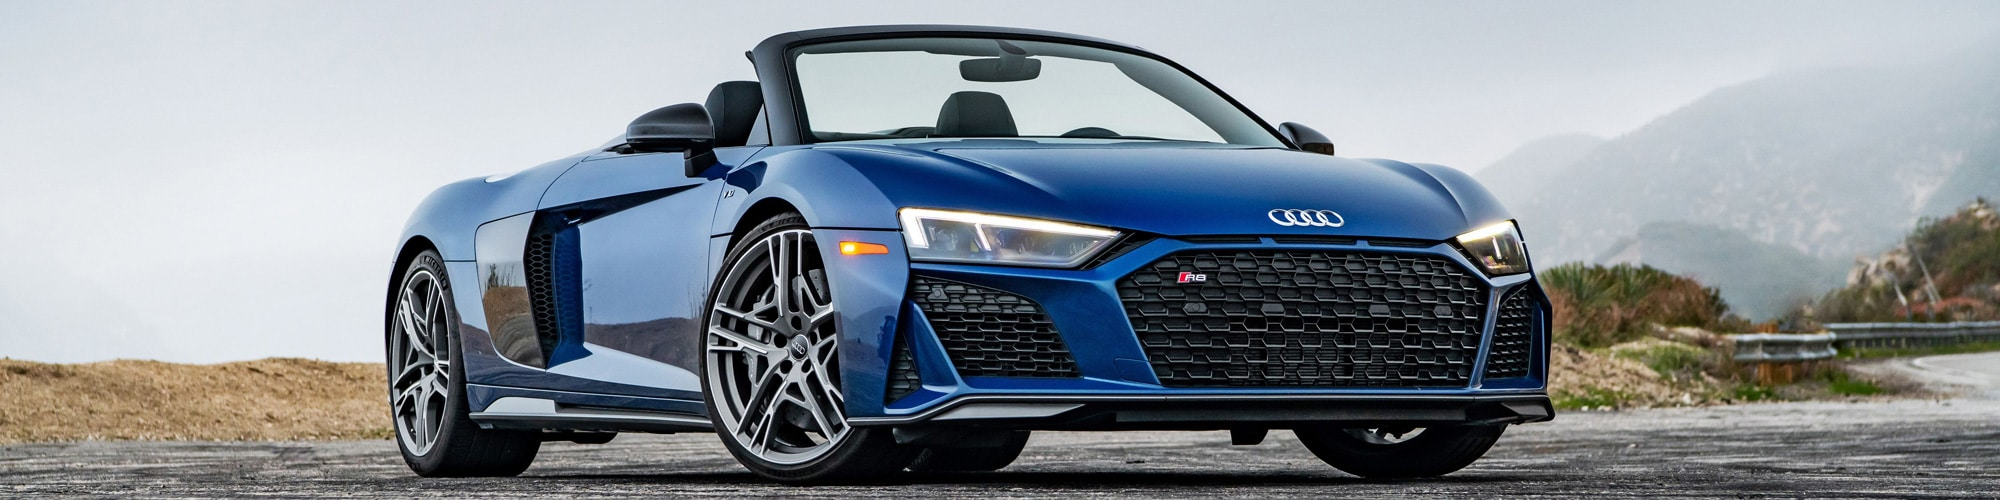 2020 Audi R8 For sale in Oklahoma City